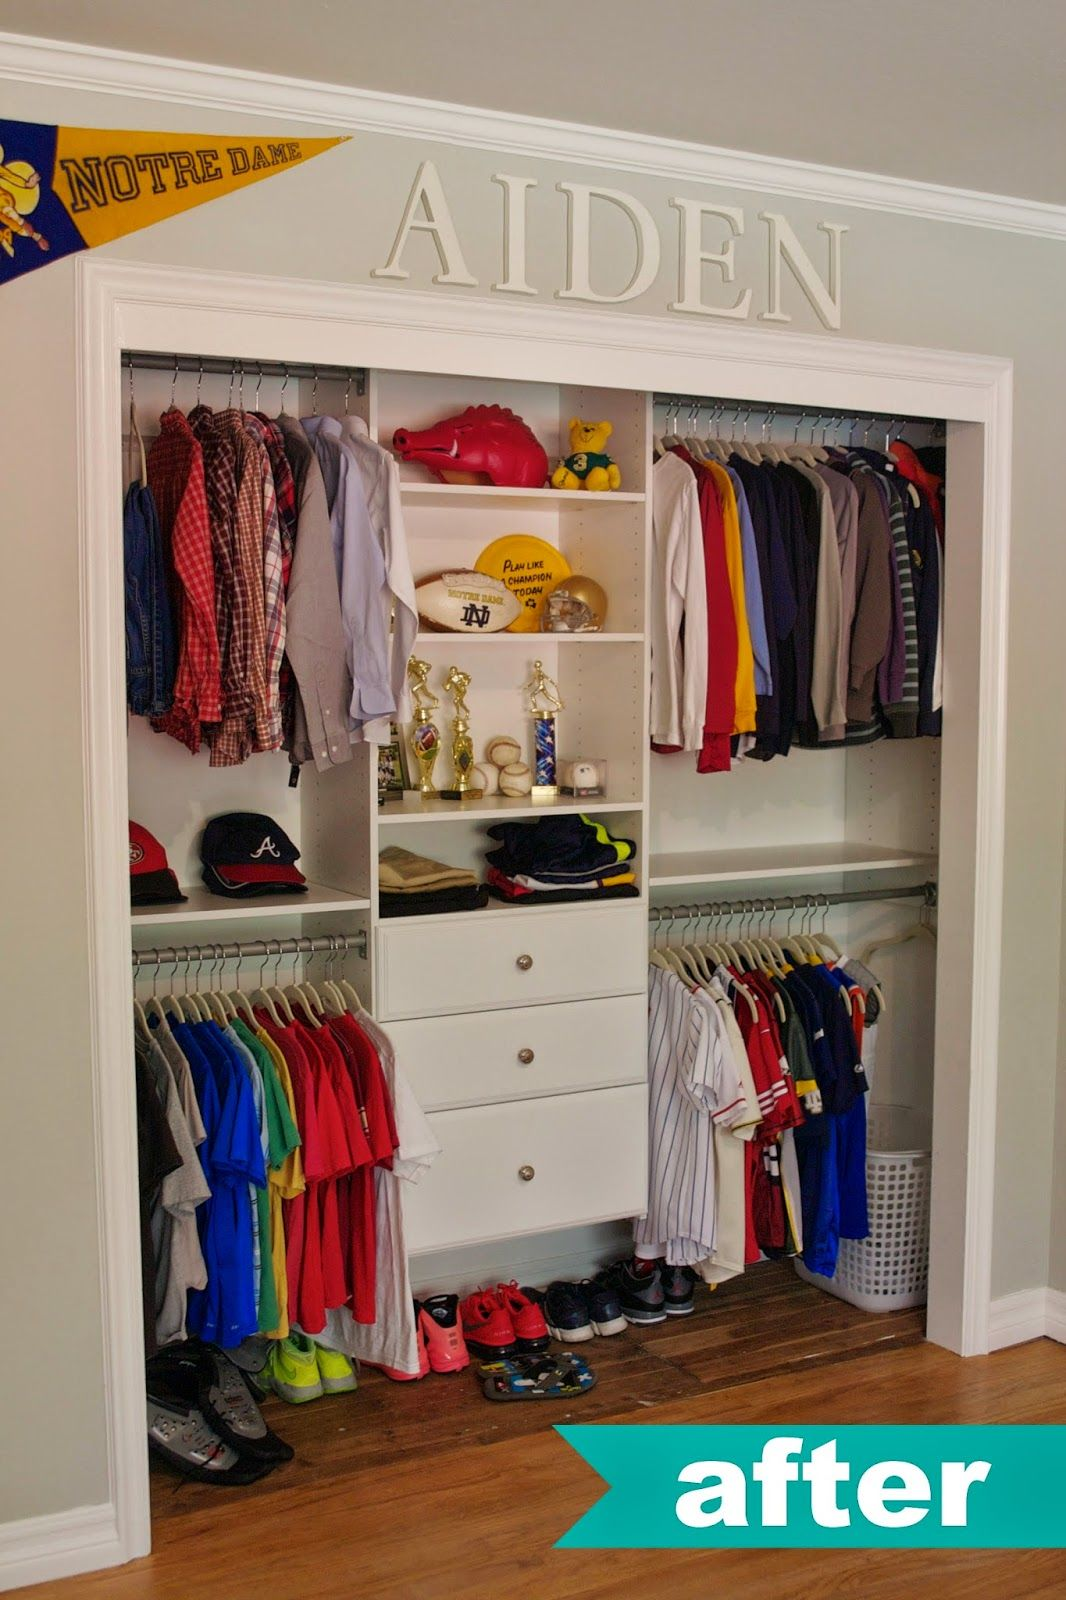 Kids closet organization ideas pinterest martha for Organizers for kids rooms